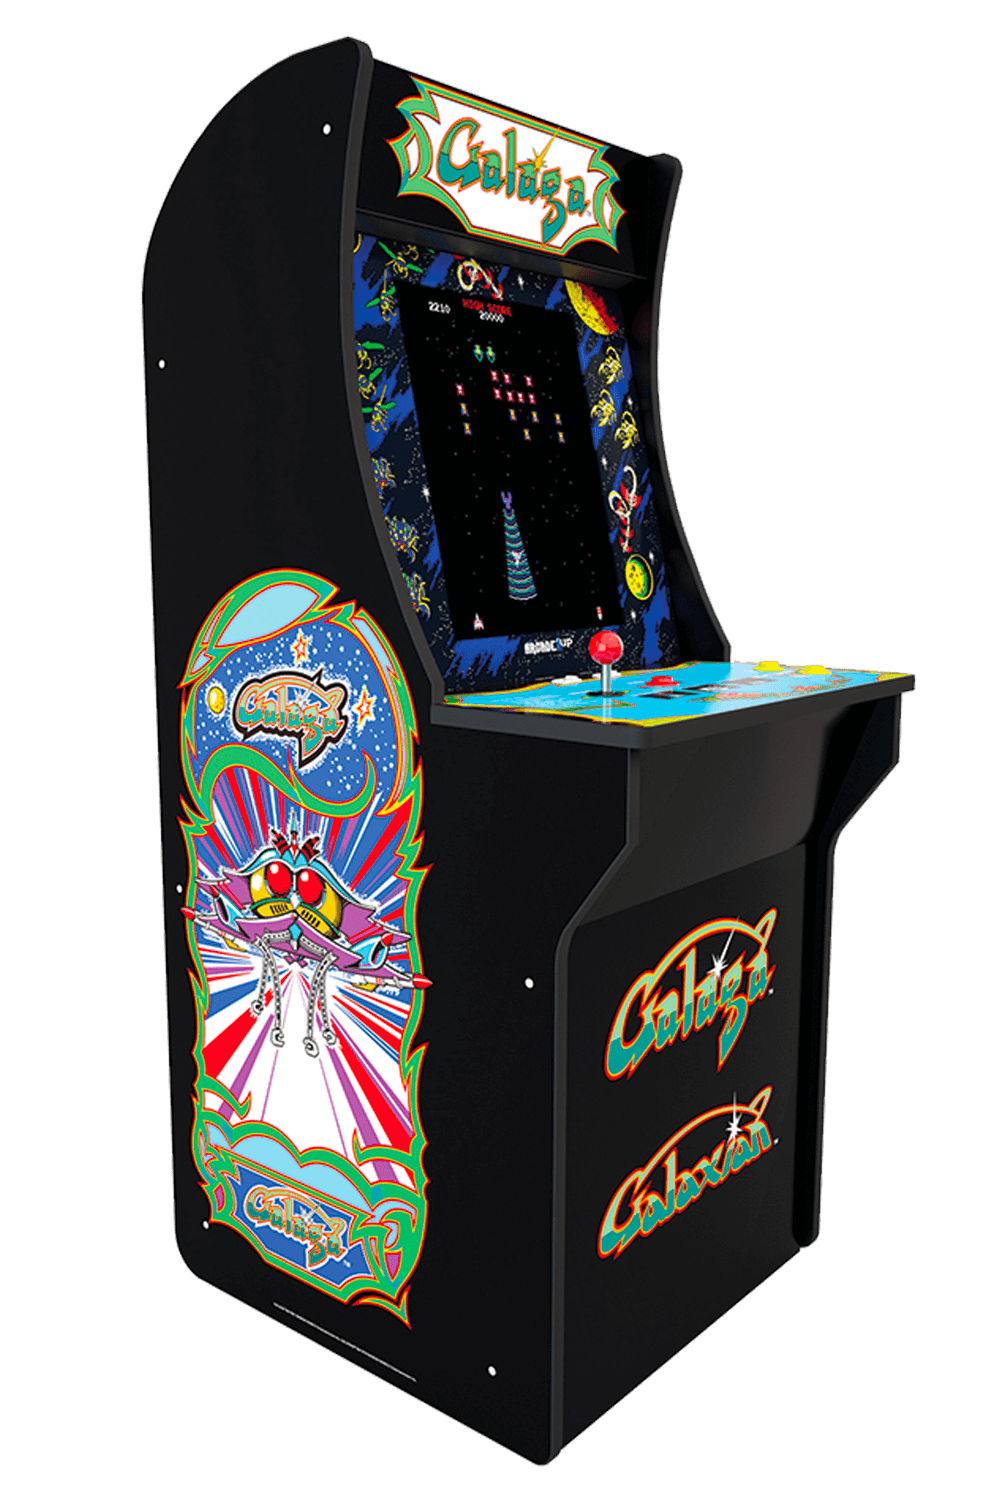 OFFICIAL Arcade1UP Galaga Cabinet - NEW IN BOX